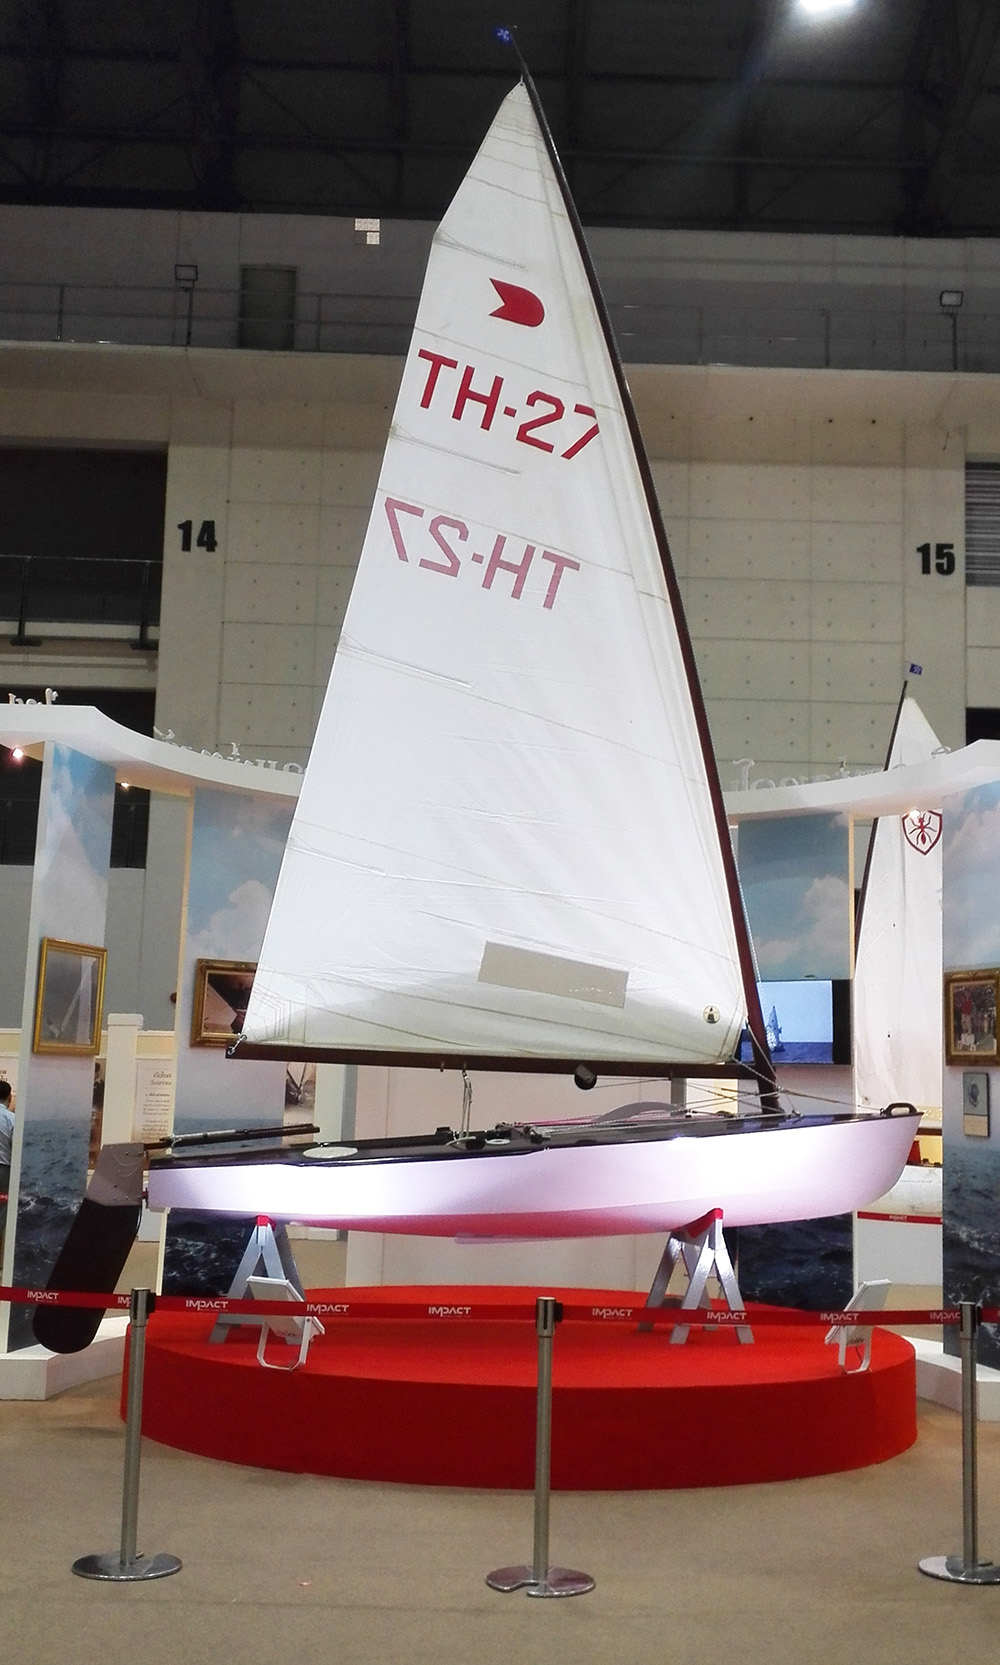 "OK Dinghy ""Vega 2"", built by His Majesty the late King Bhumipol Adulyadej of Thailand 50 years ago. Here on display at the 2016 National Science and Technology Fair in Bangkok at IMPACT Muang Thani."